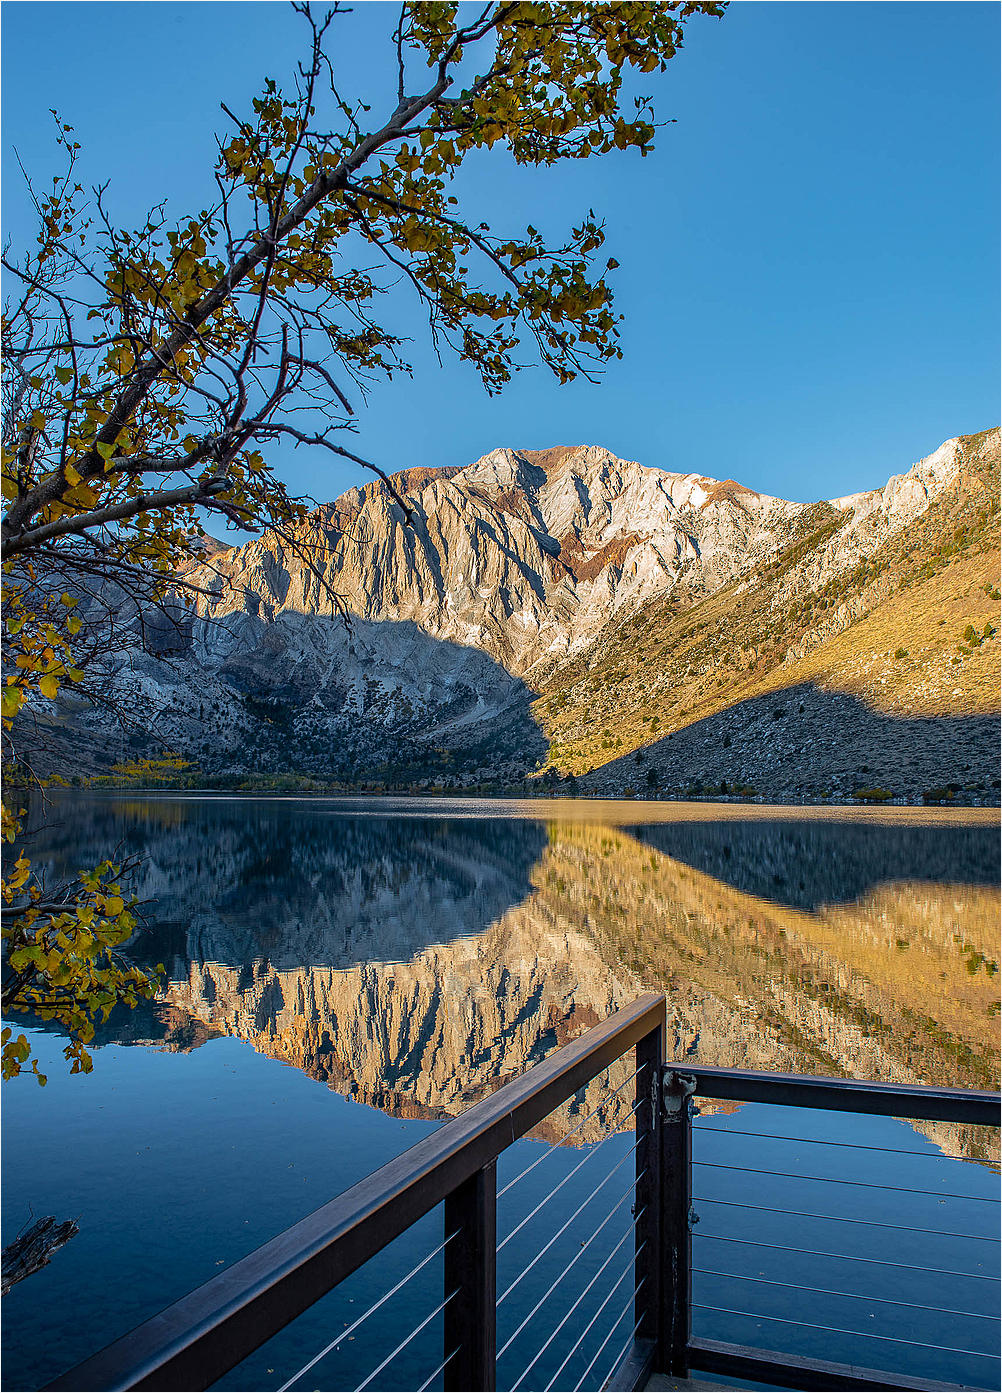 Convict Lake, Eastern Sierra Nevada California